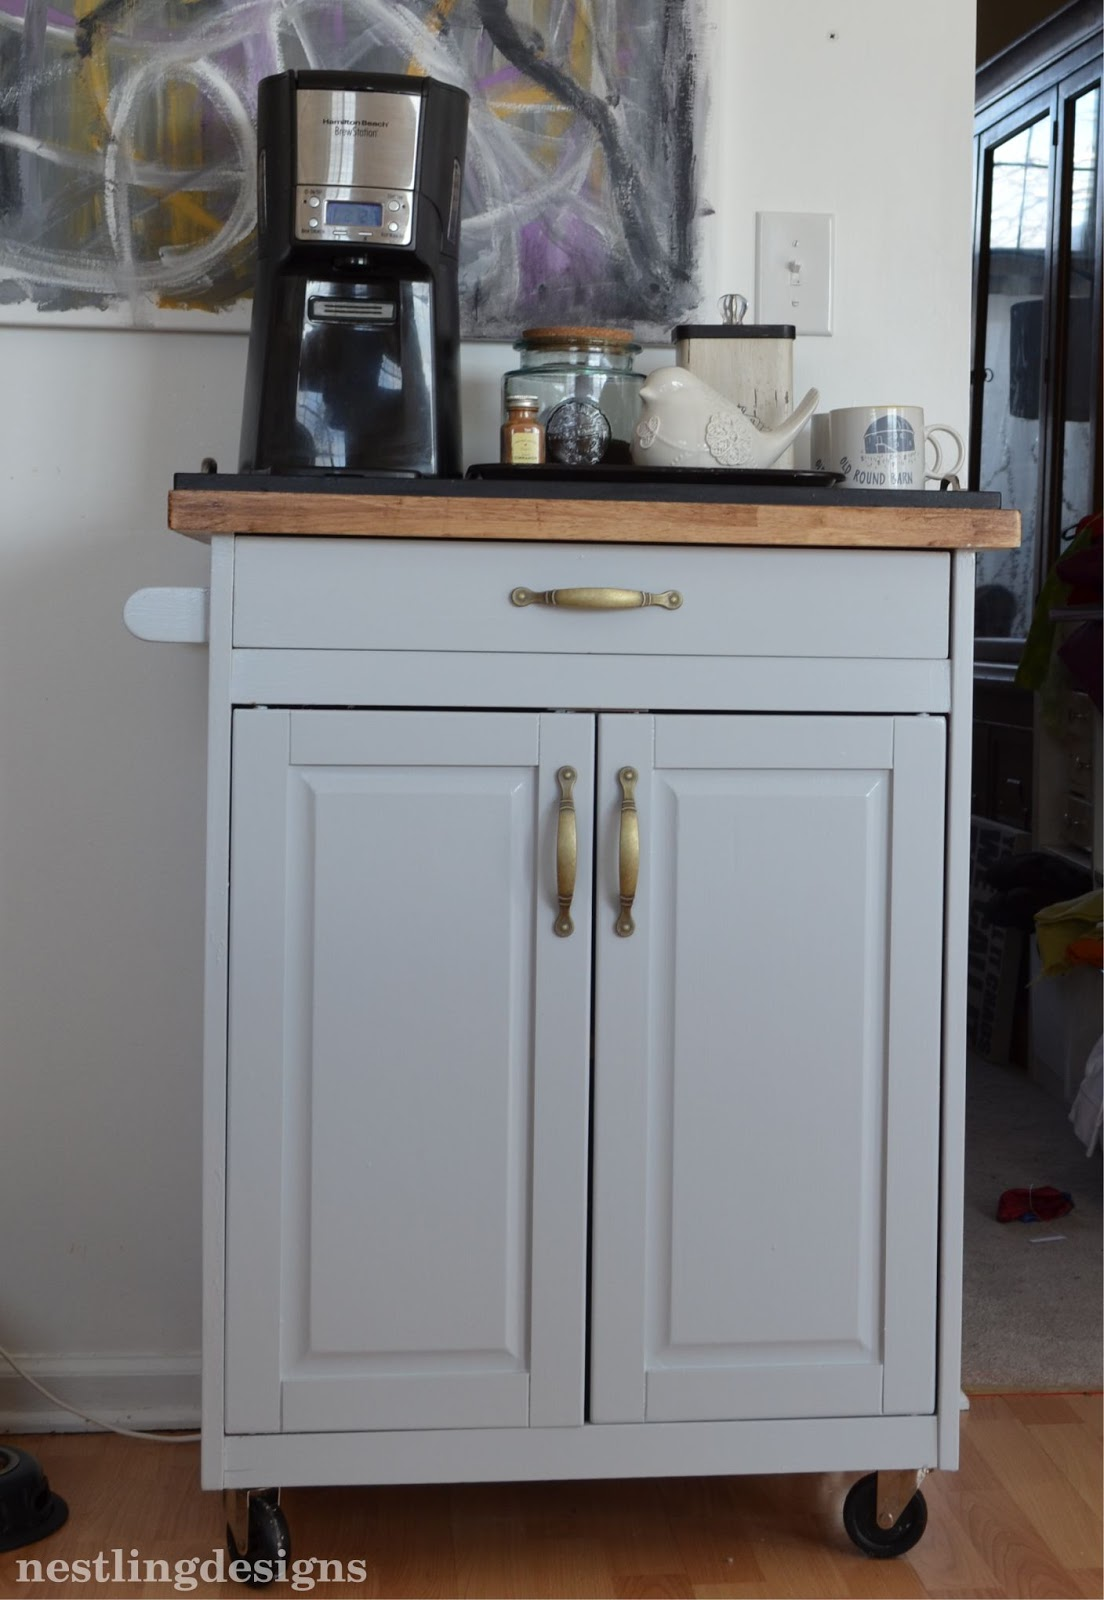 Nestling One Room at a Time  Kitchen Cart turned Coffee